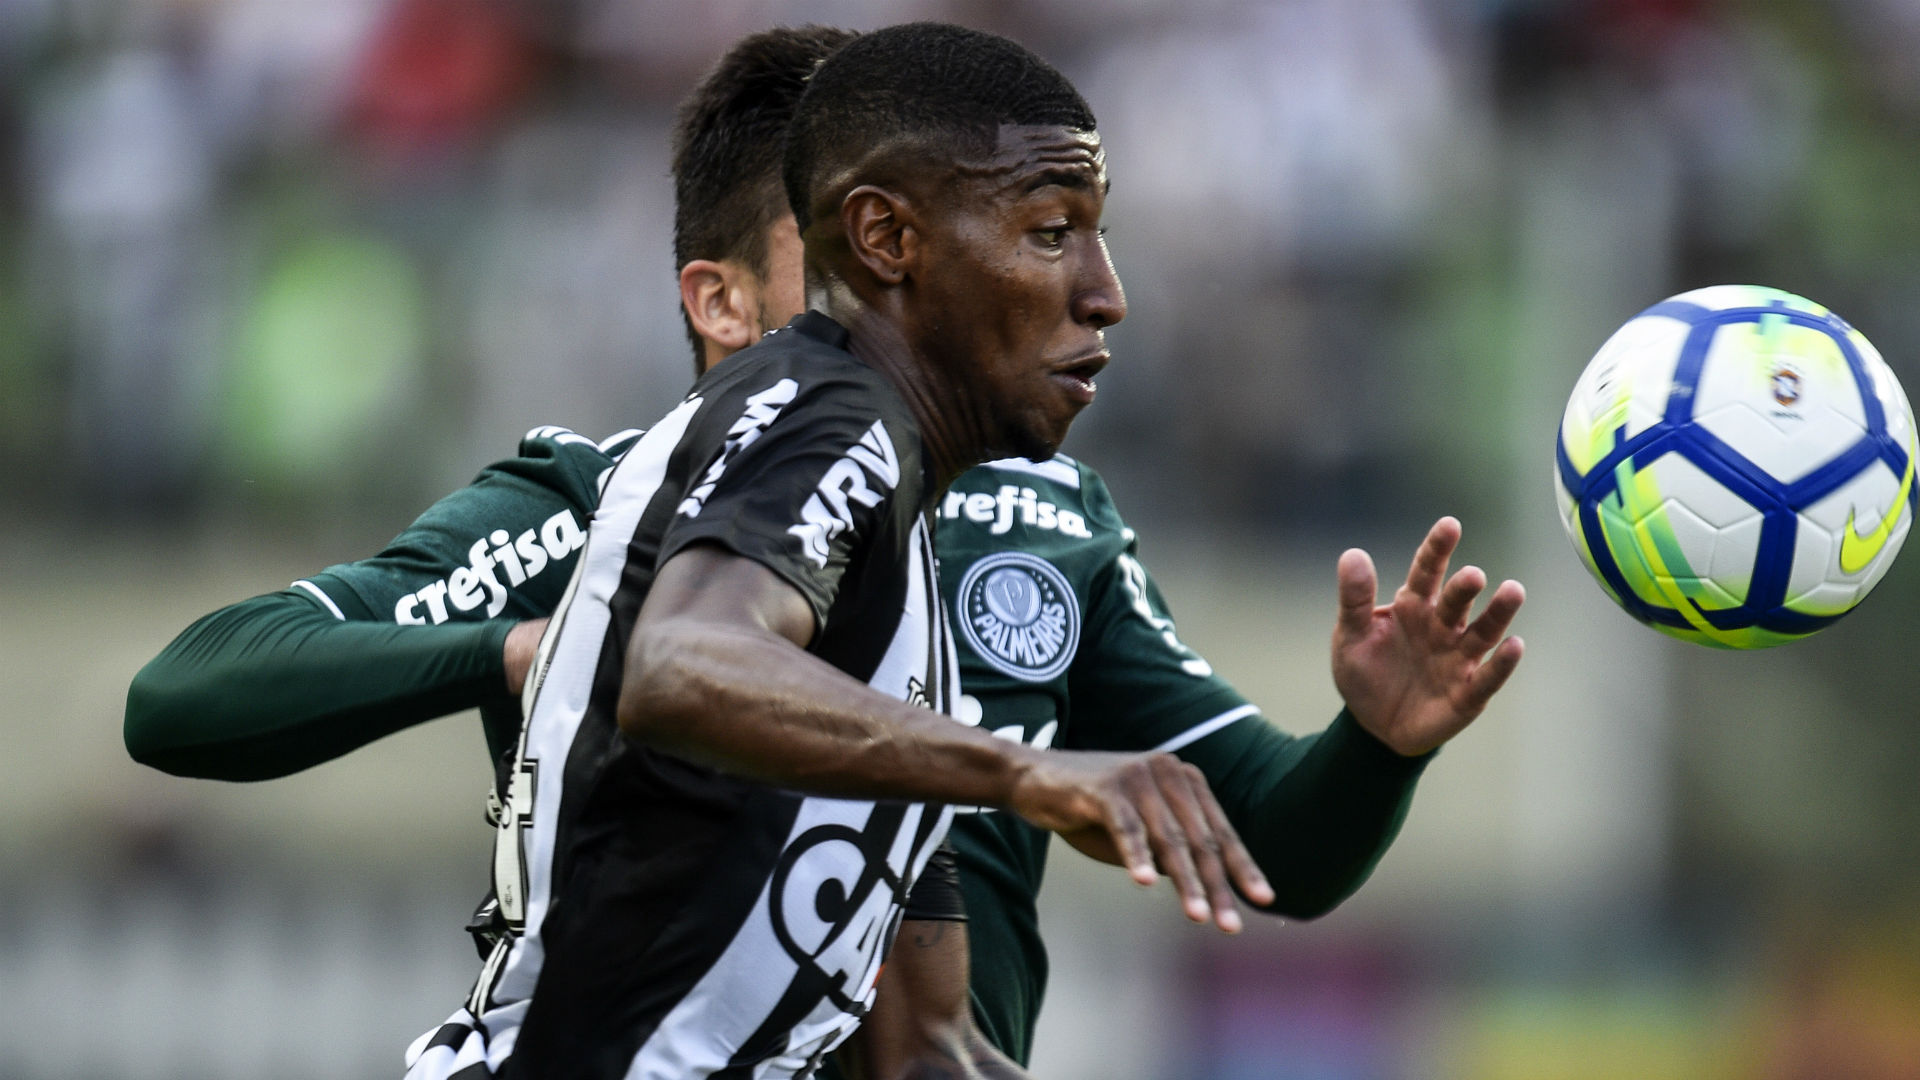 Emerson arrives at Betis on loan from Atletico Mineiro, Barca involved